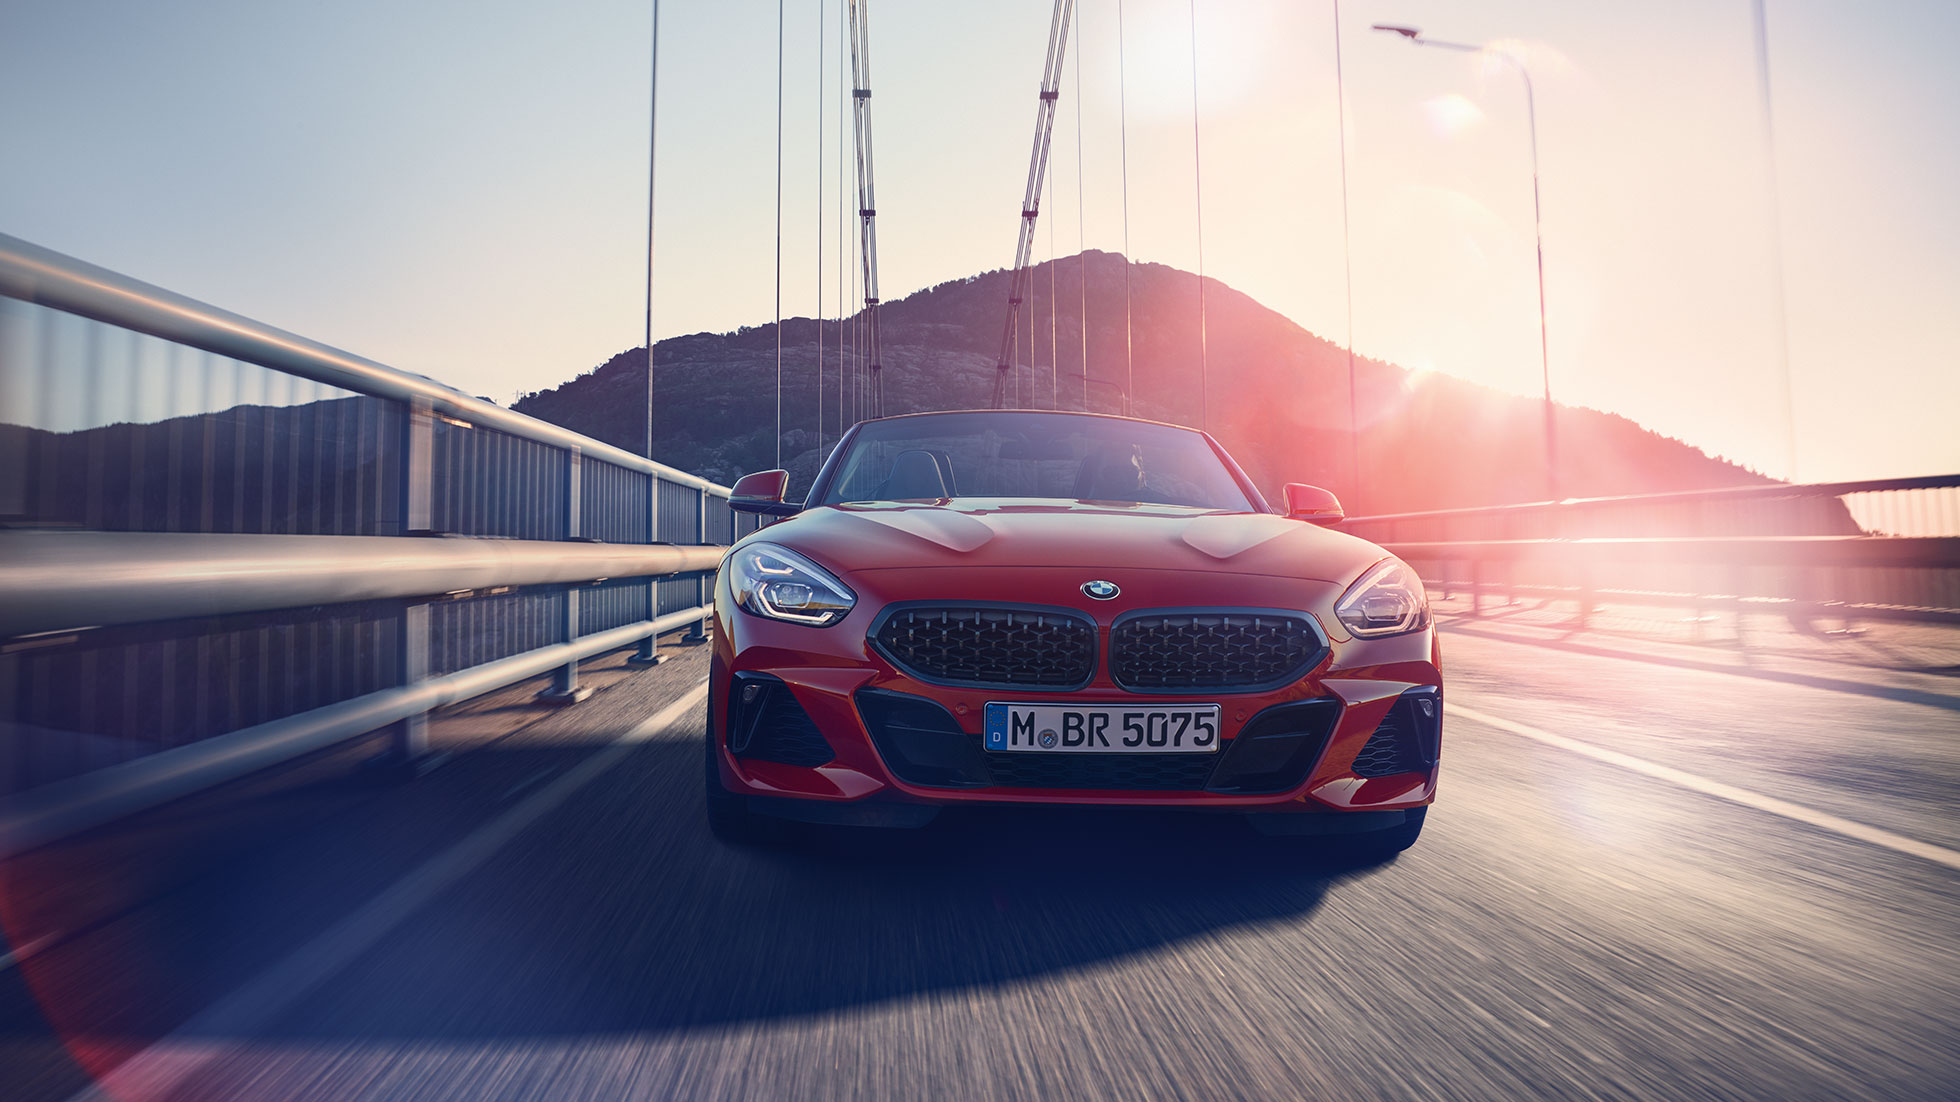 Front shot of the BMW Z4 Roadster on a bridge